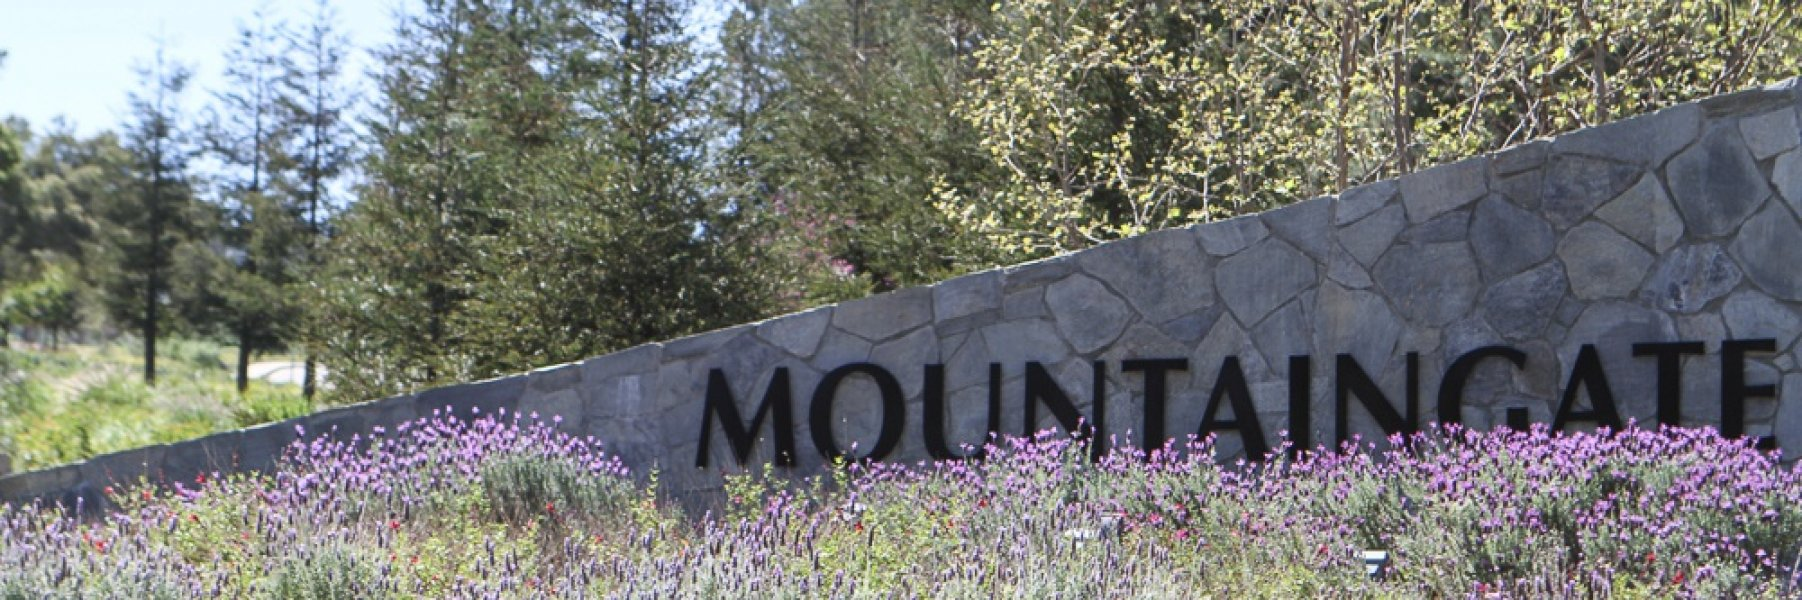 Mountaingate is a community of homes in Brentwood Los Angeles